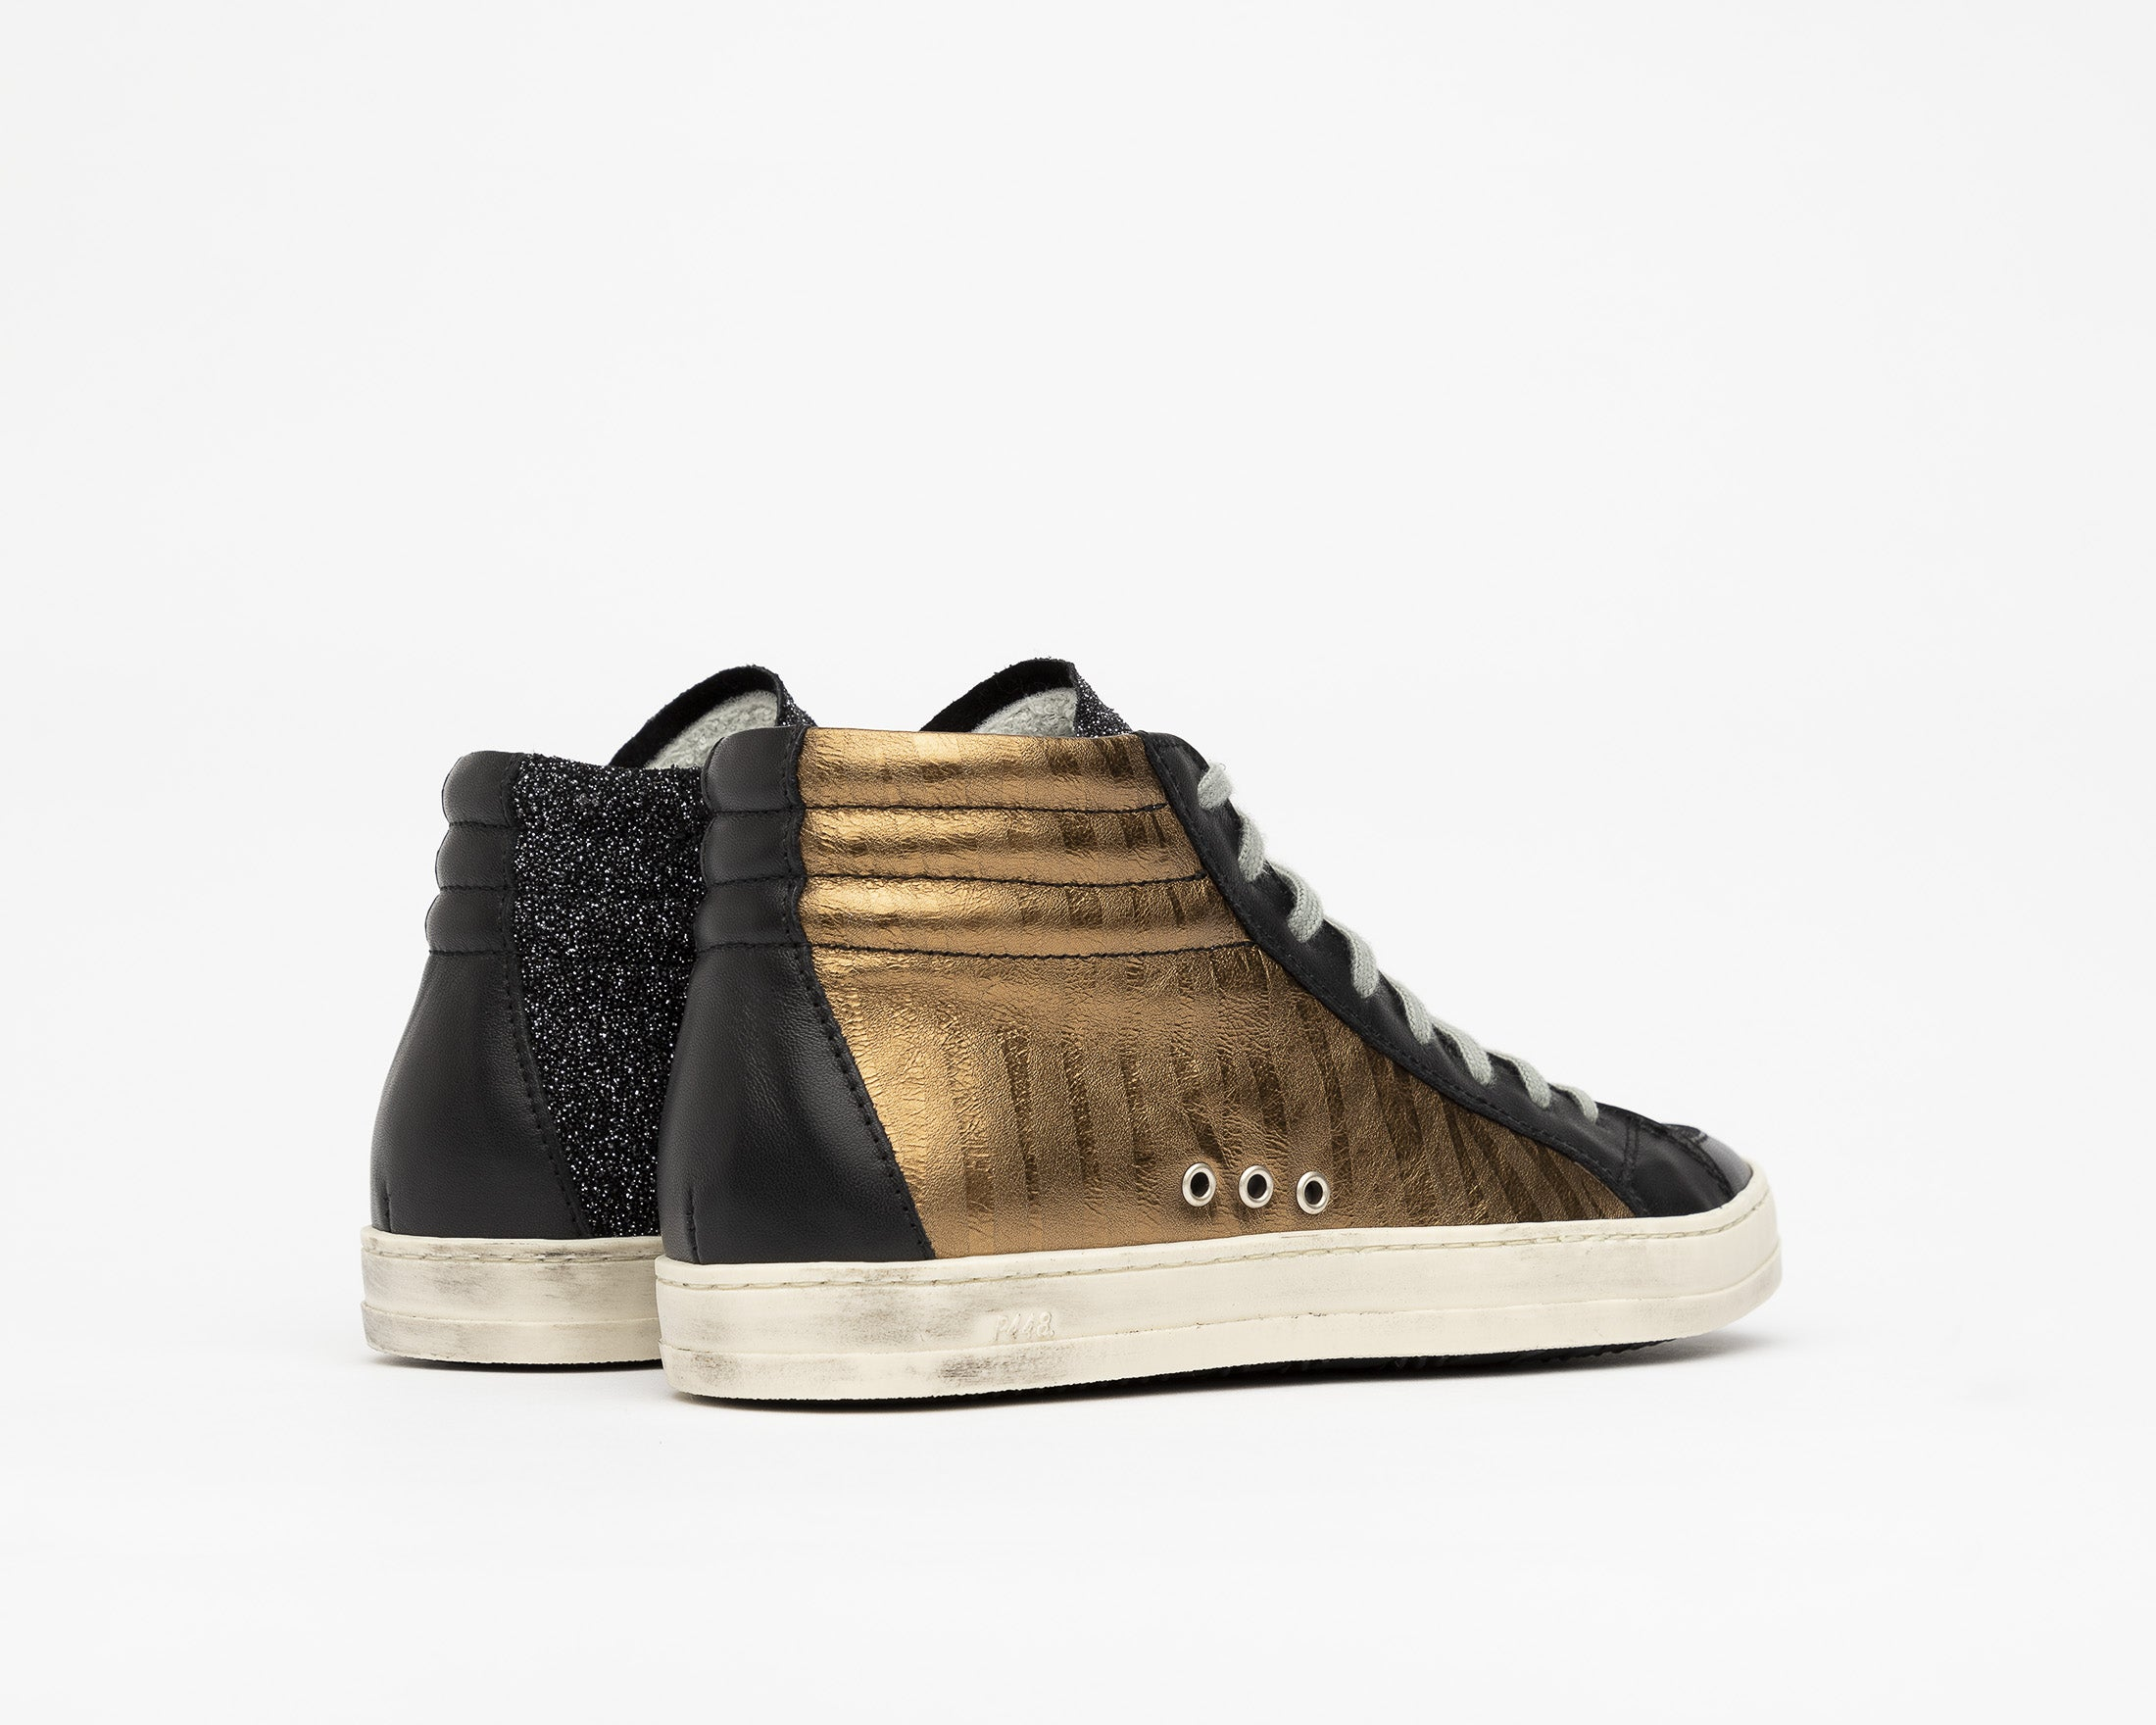 SkateBS High-Top Sneaker in Sahara - Back